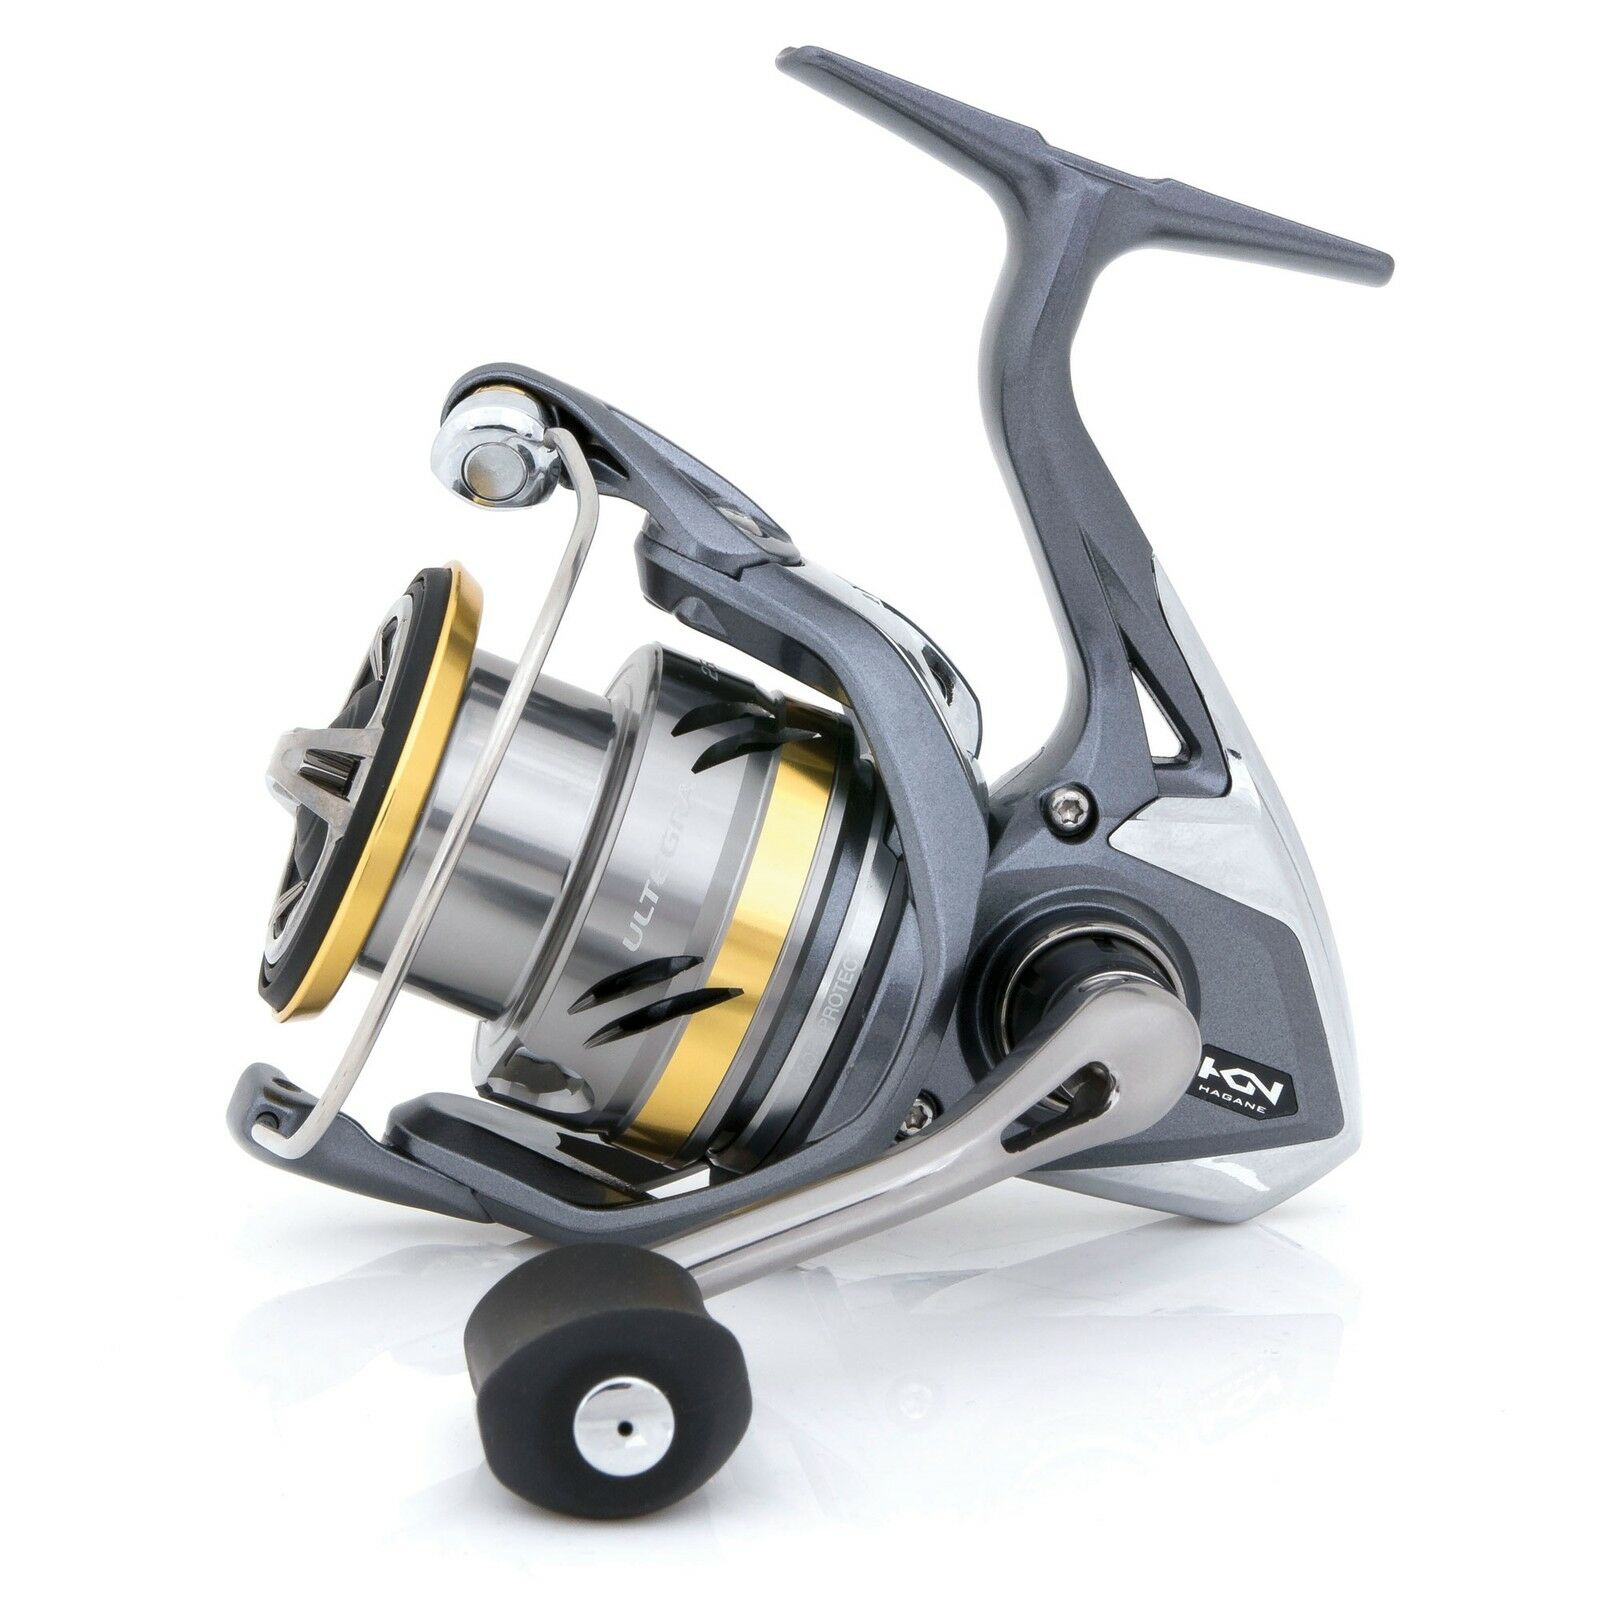 Shimano ultegra FB spinnrolle angel papel 1000-5000 Hagane X-Ship coreprojoect